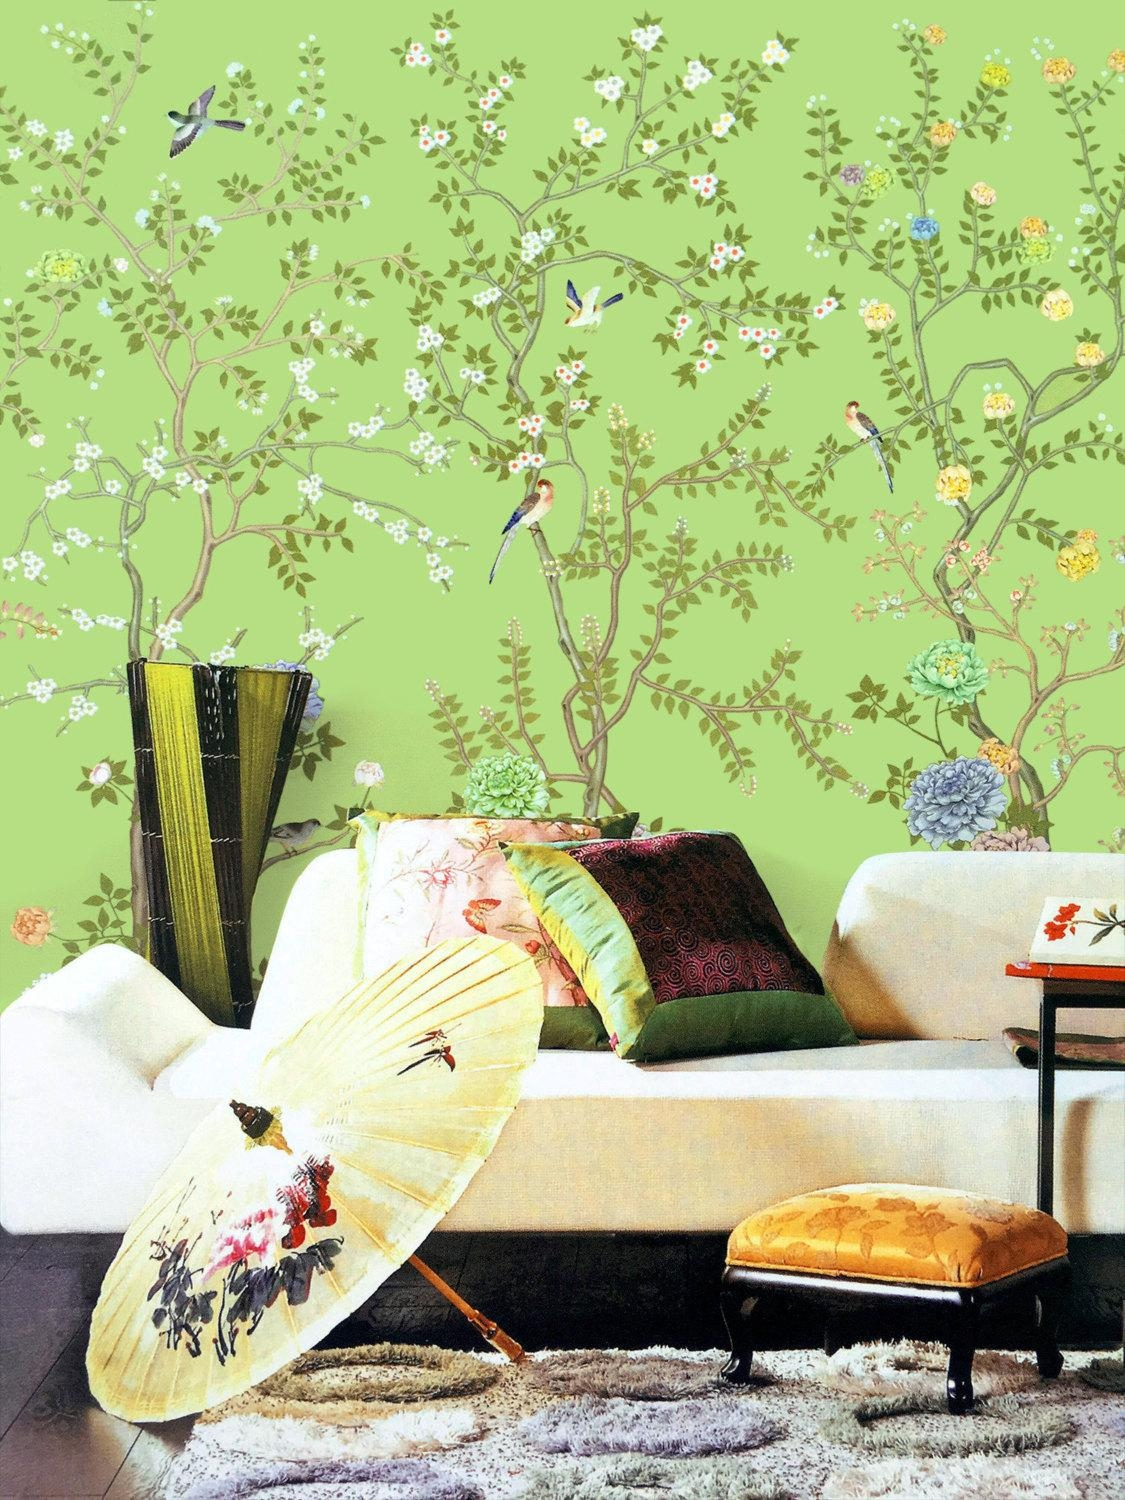 Lemon Green Chinoiserie Wallpaper Exotic Birds Trees Flowering Pertaining To Chinoiserie Wall Art (View 4 of 20)